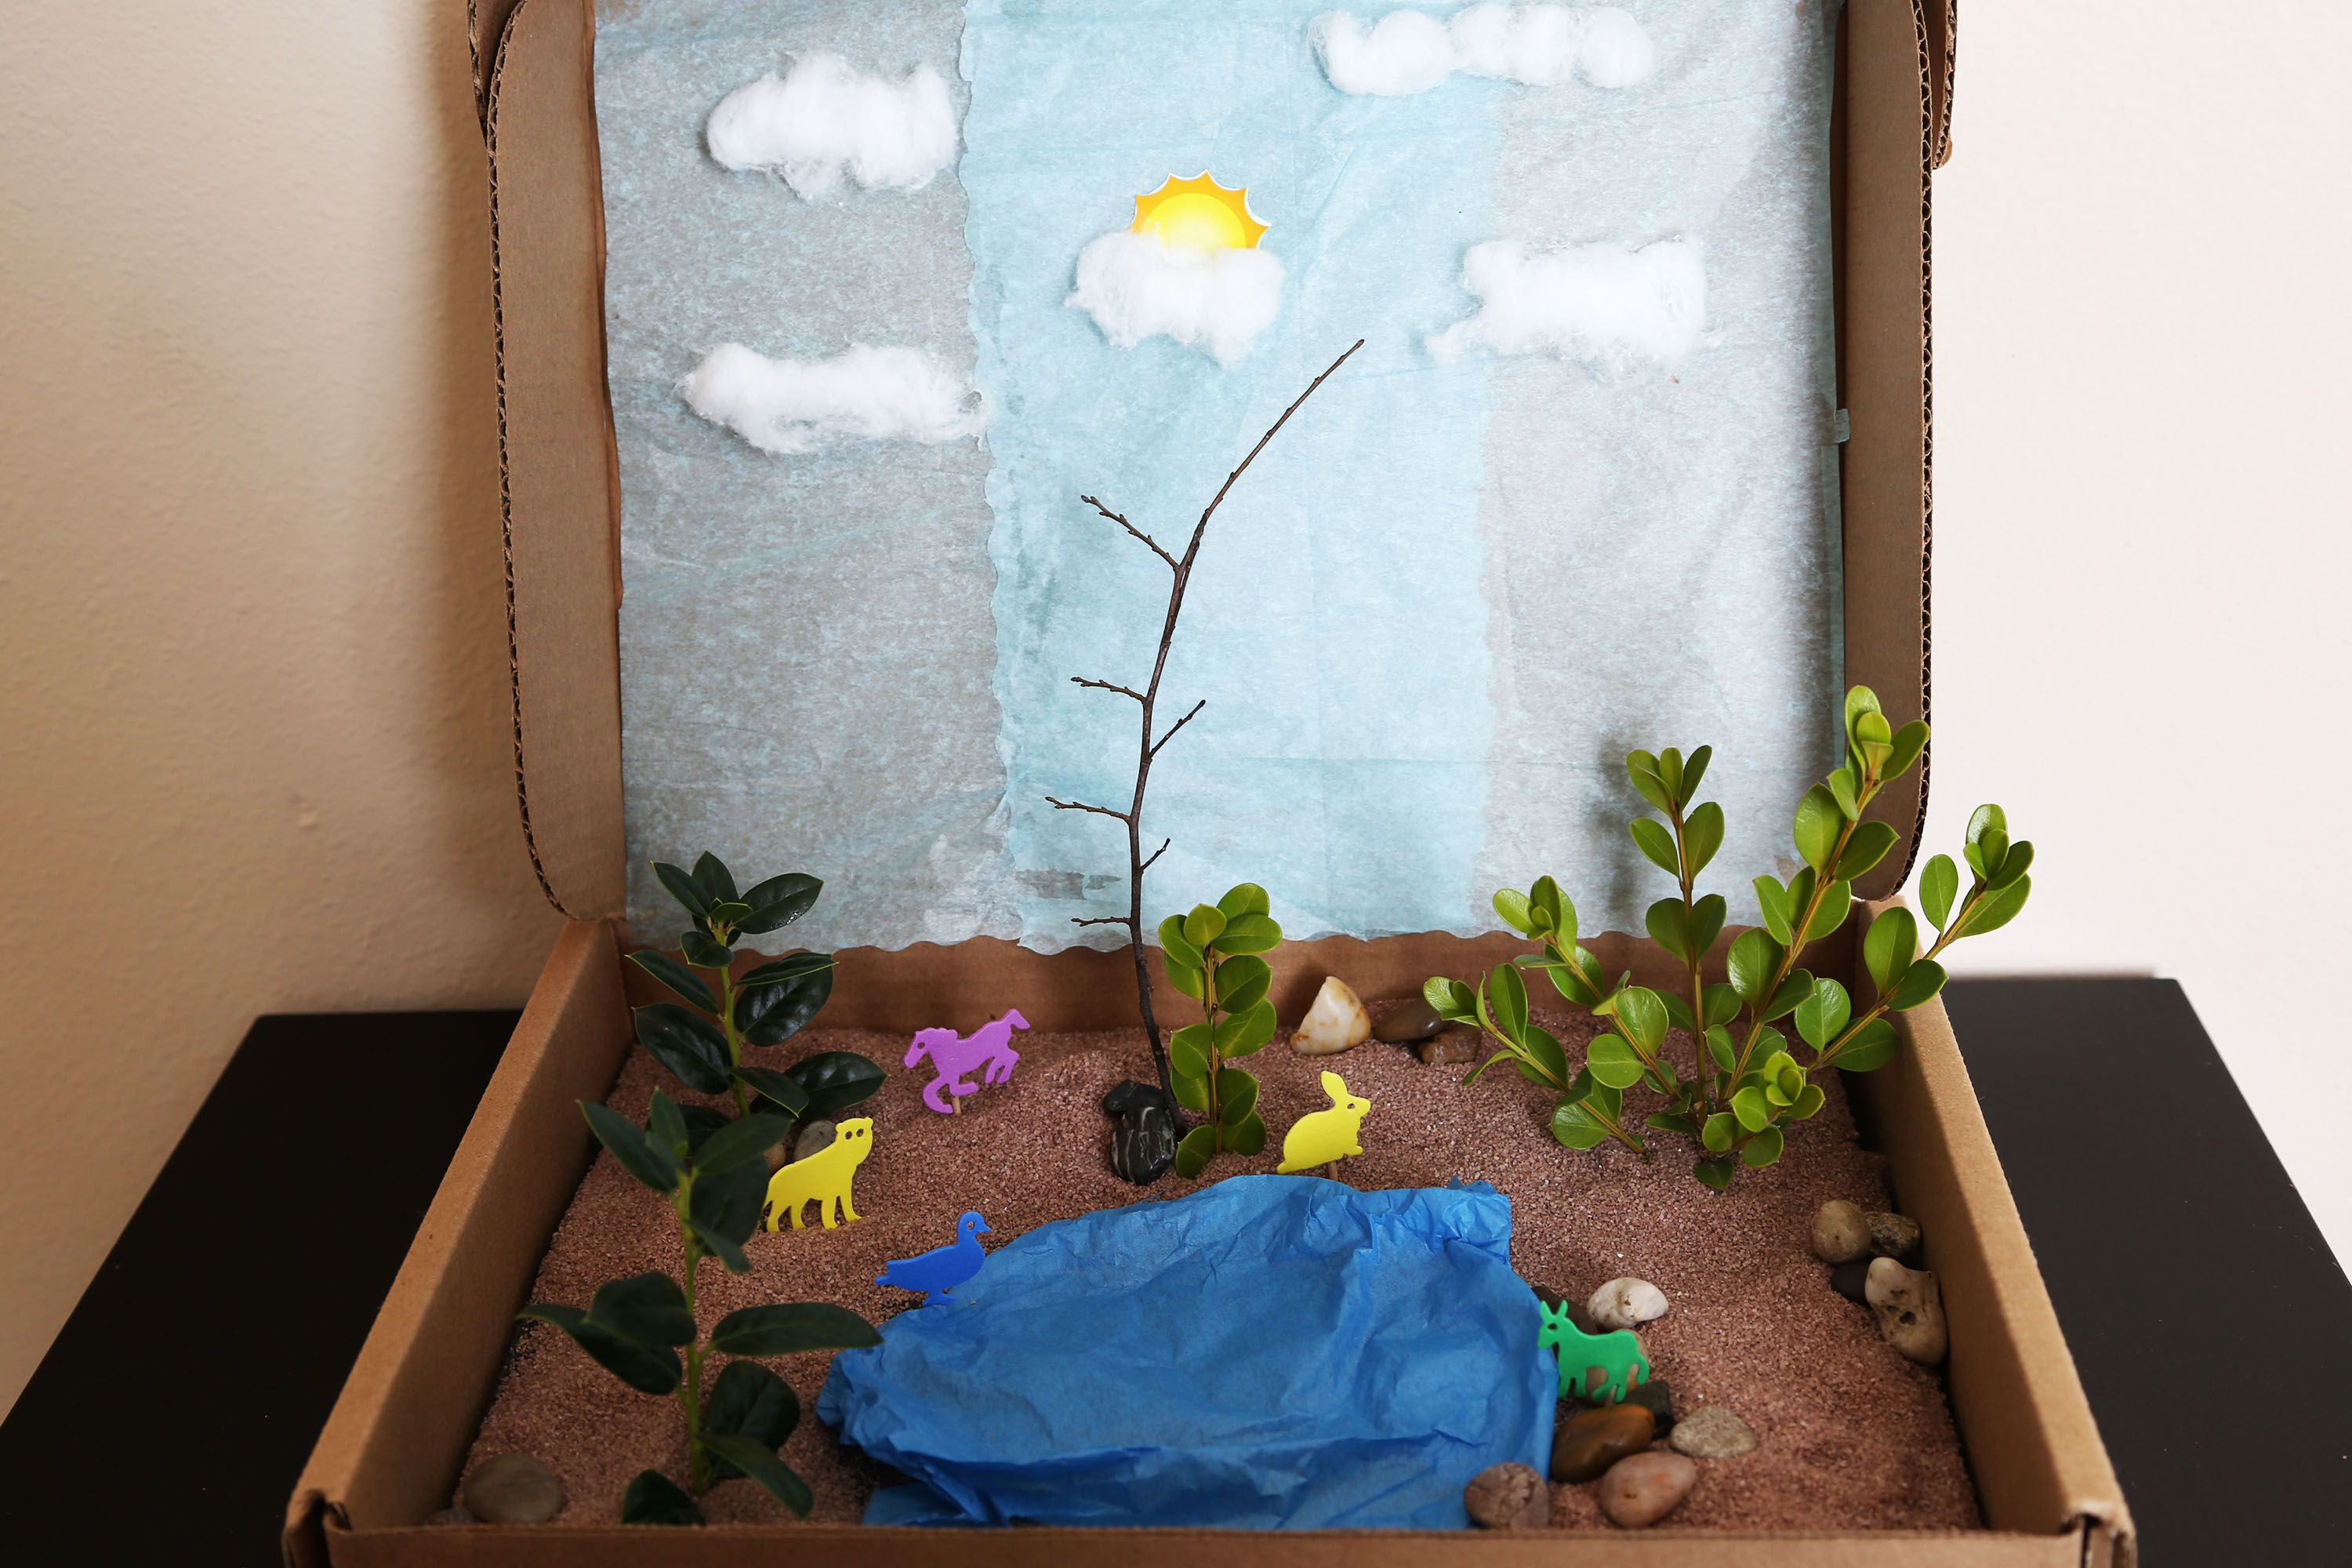 Make Your Own Diorama: How To Create A Habitat For A School Project